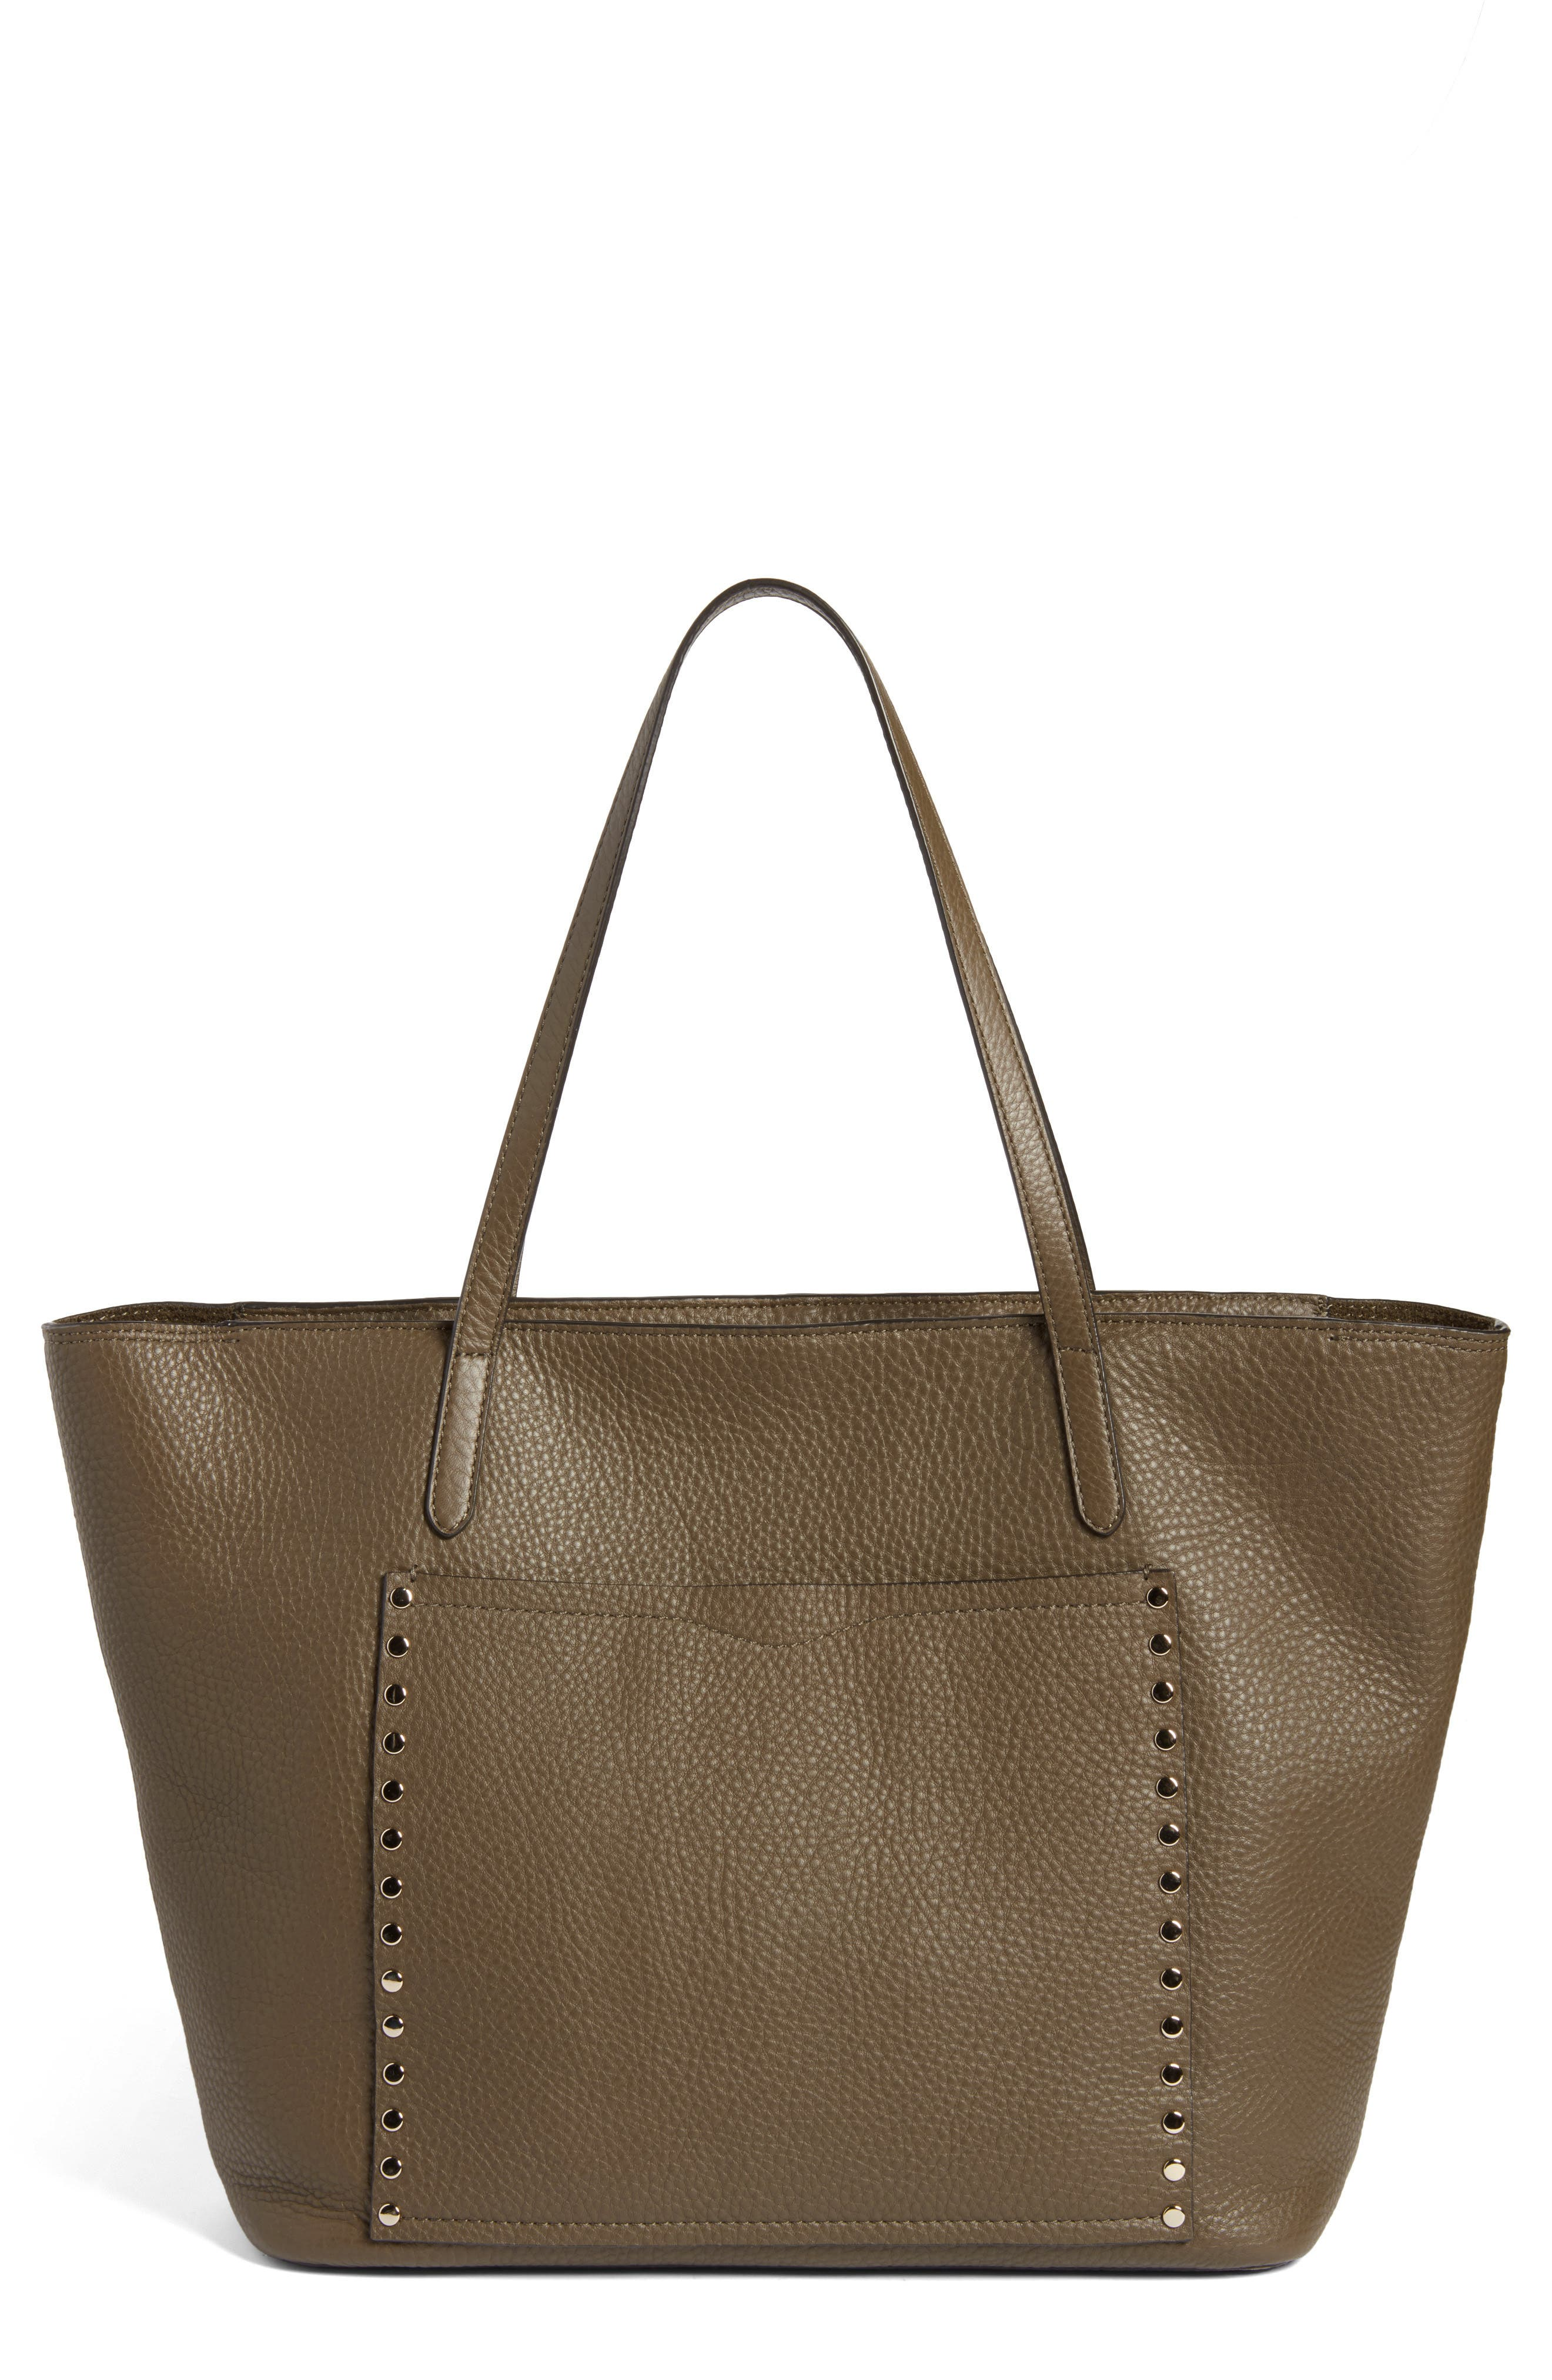 Unlined Front Pocket Leather Tote,                         Main,                         color, Moss/ Light Gold Hardware